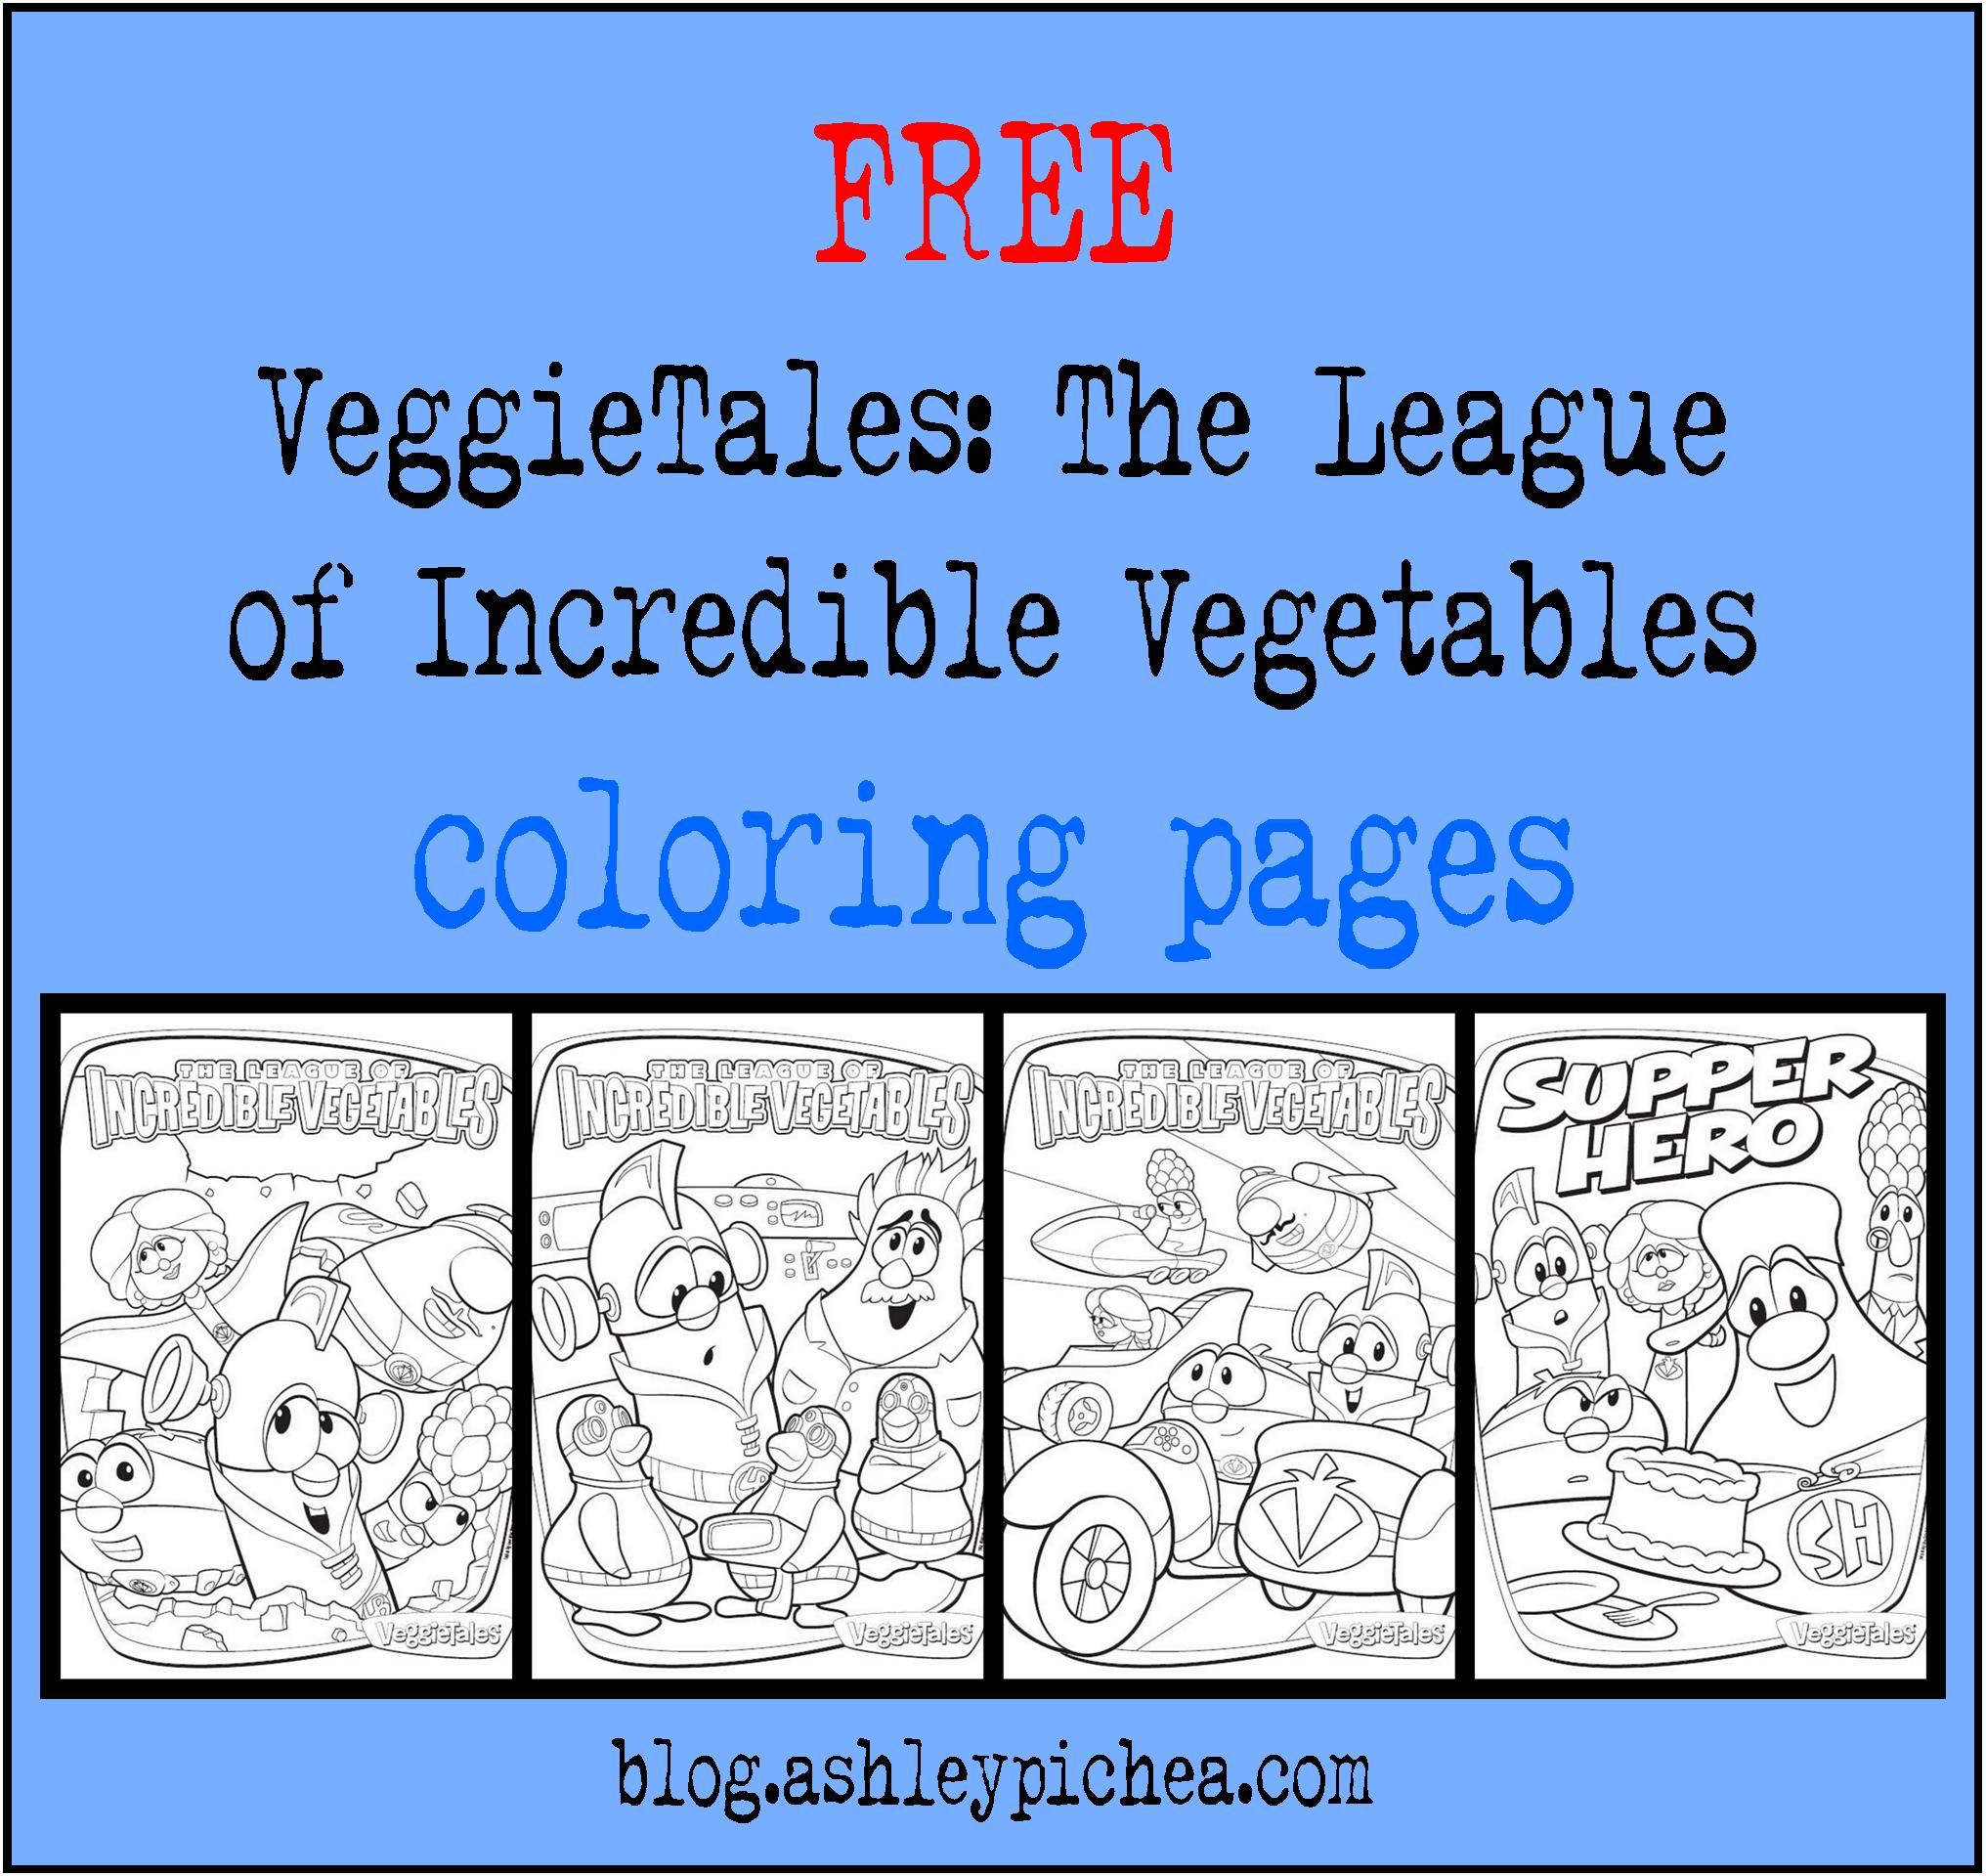 VeggieTales: The League of Incredible Vegetables | Pinterest